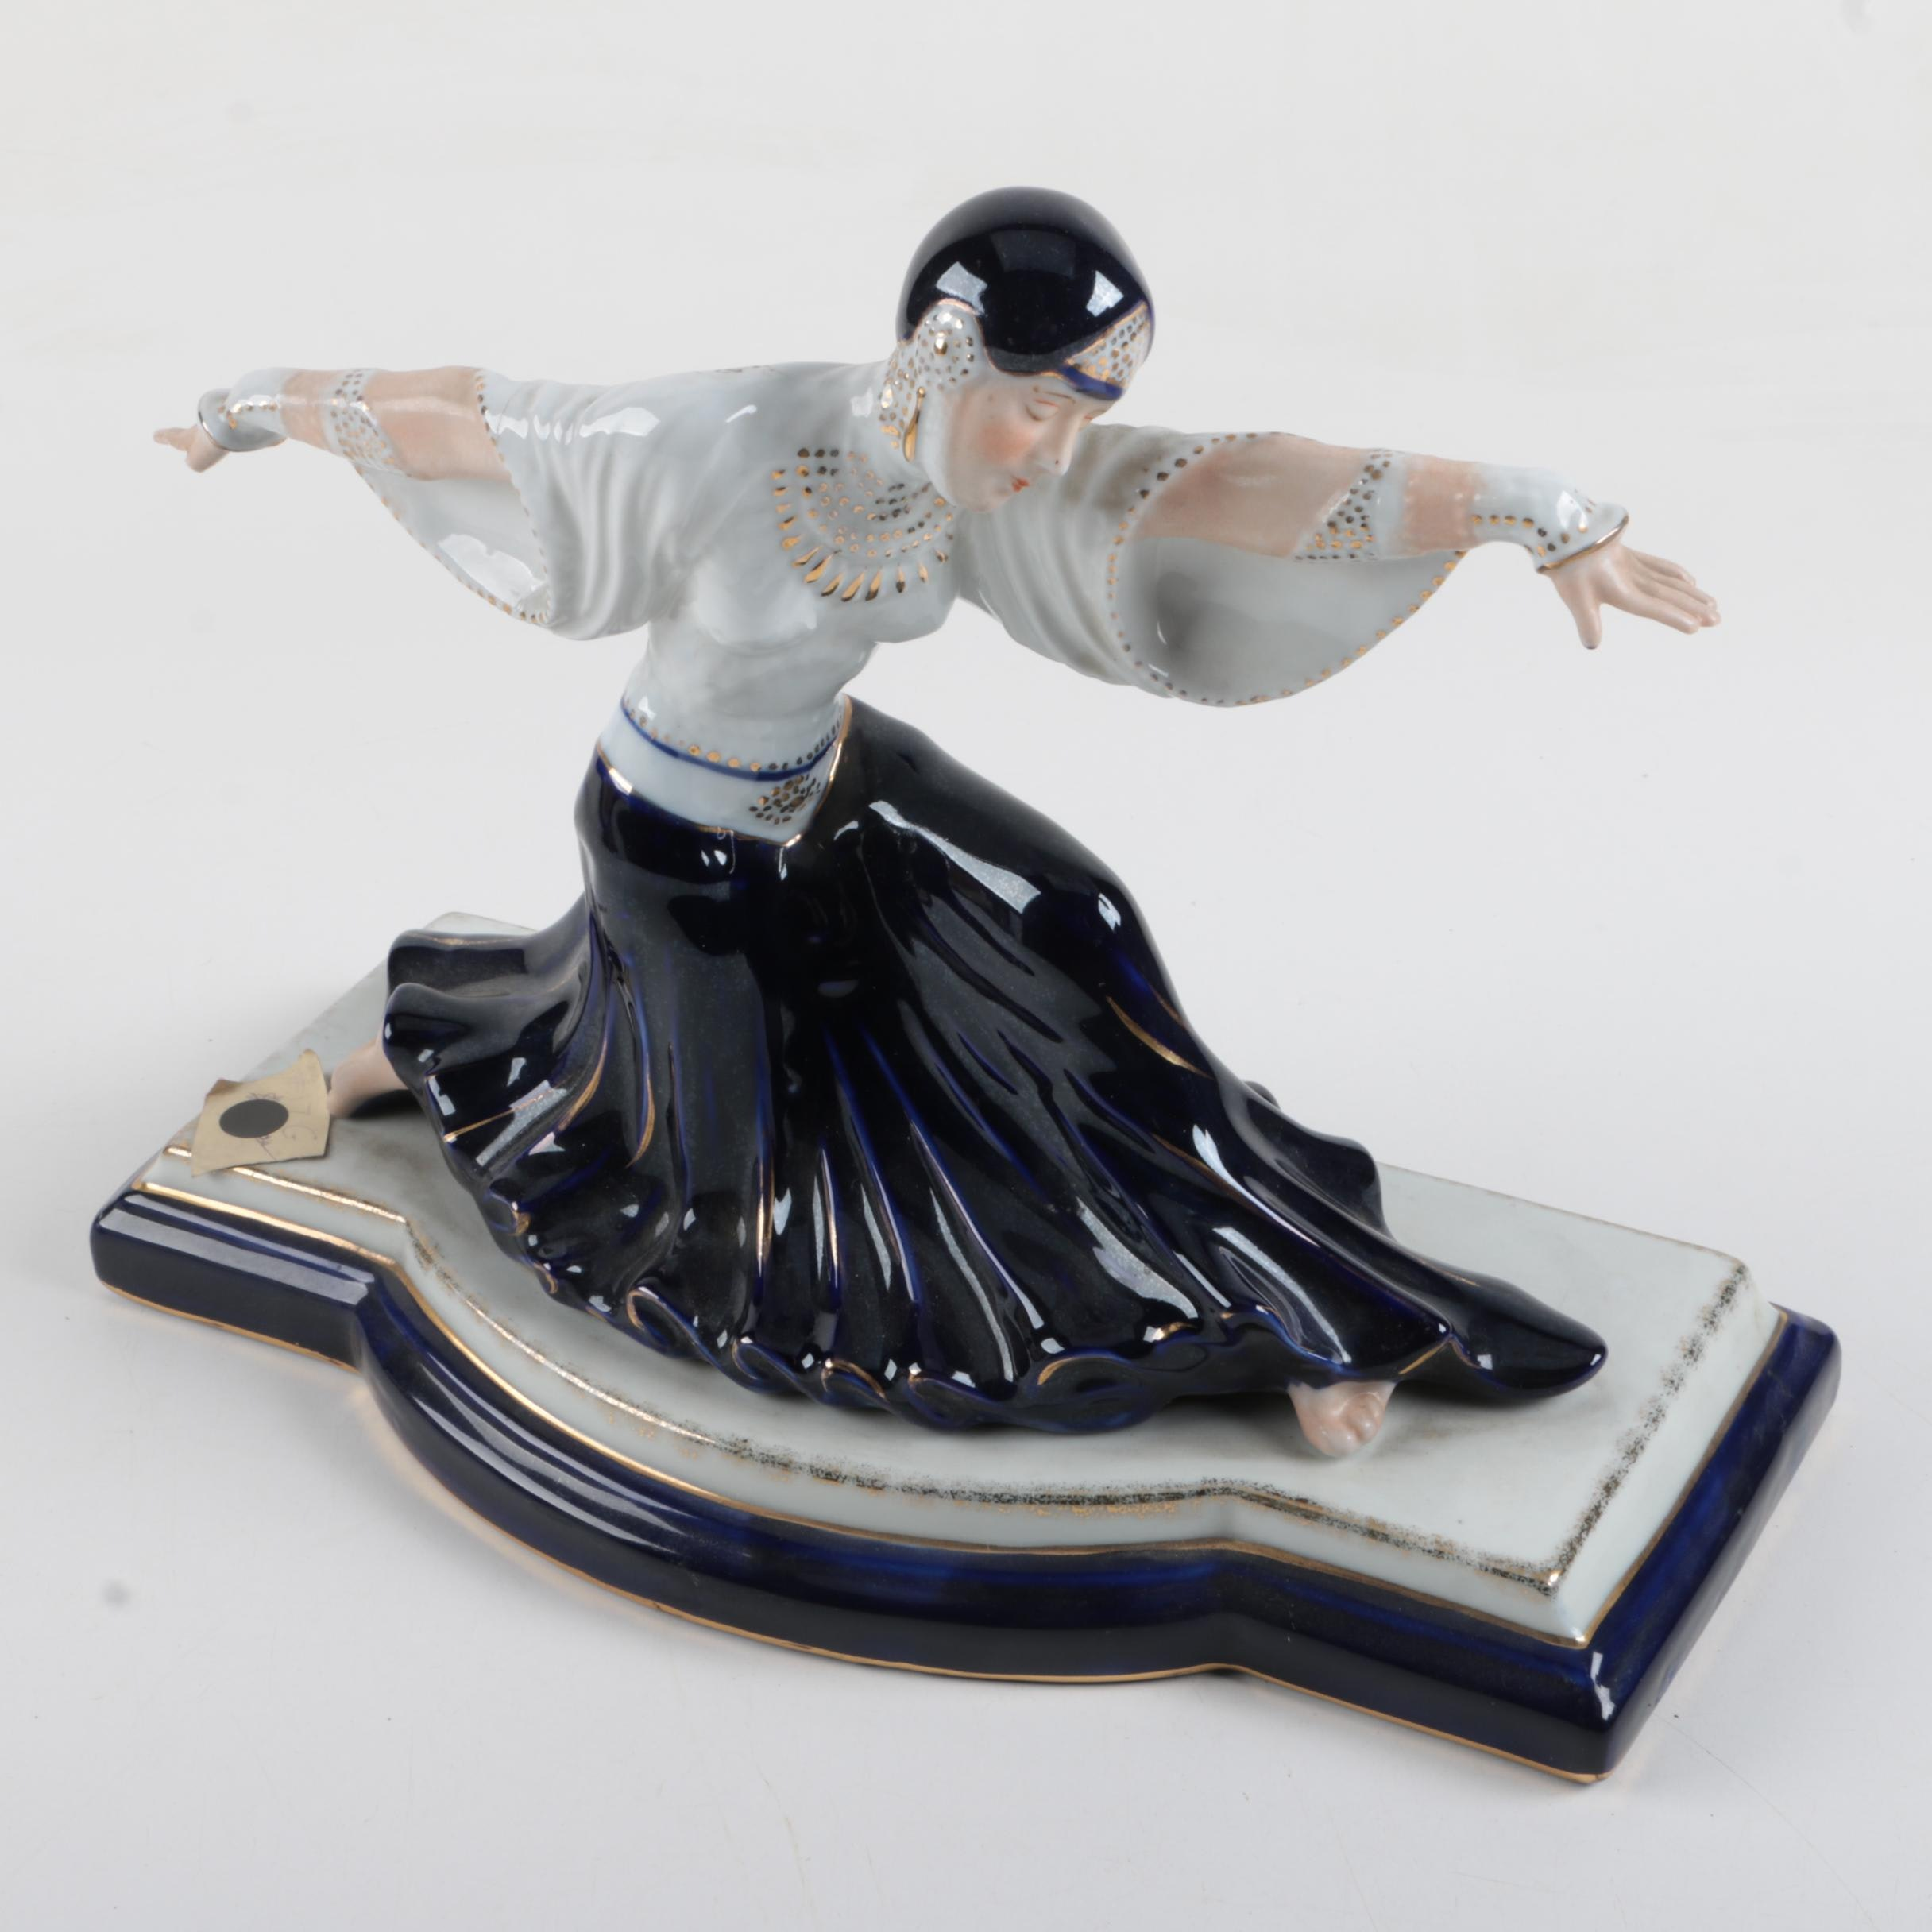 Art Deco Style Porcelain Figurine of a Woman